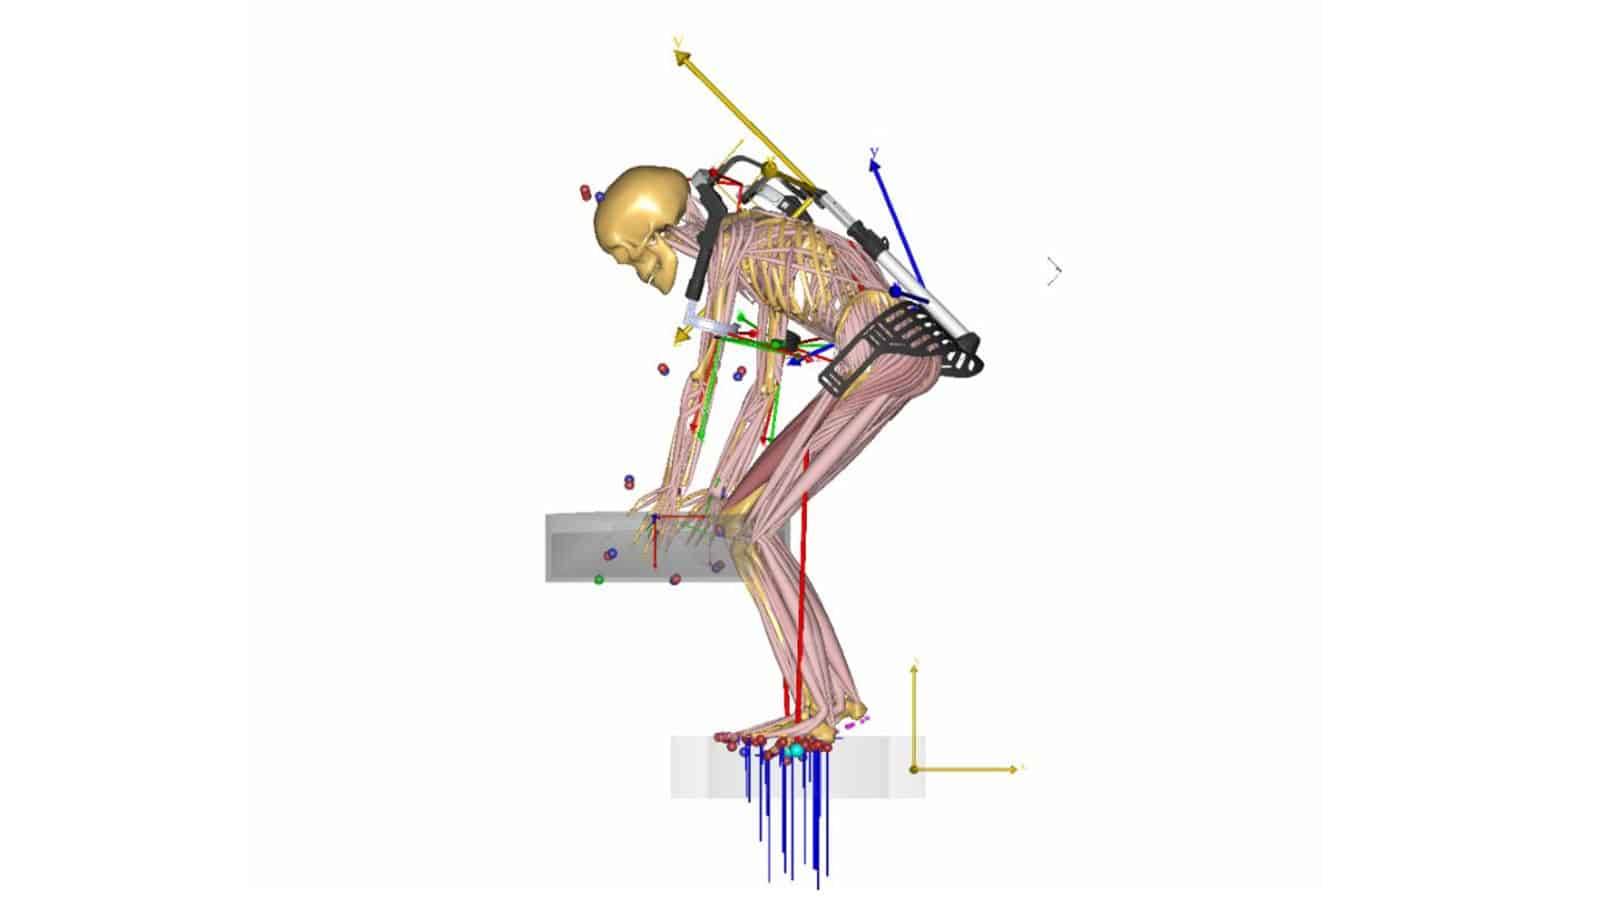 biomechanical investigation of a passive upper extremity exoskeleton for manual material handling